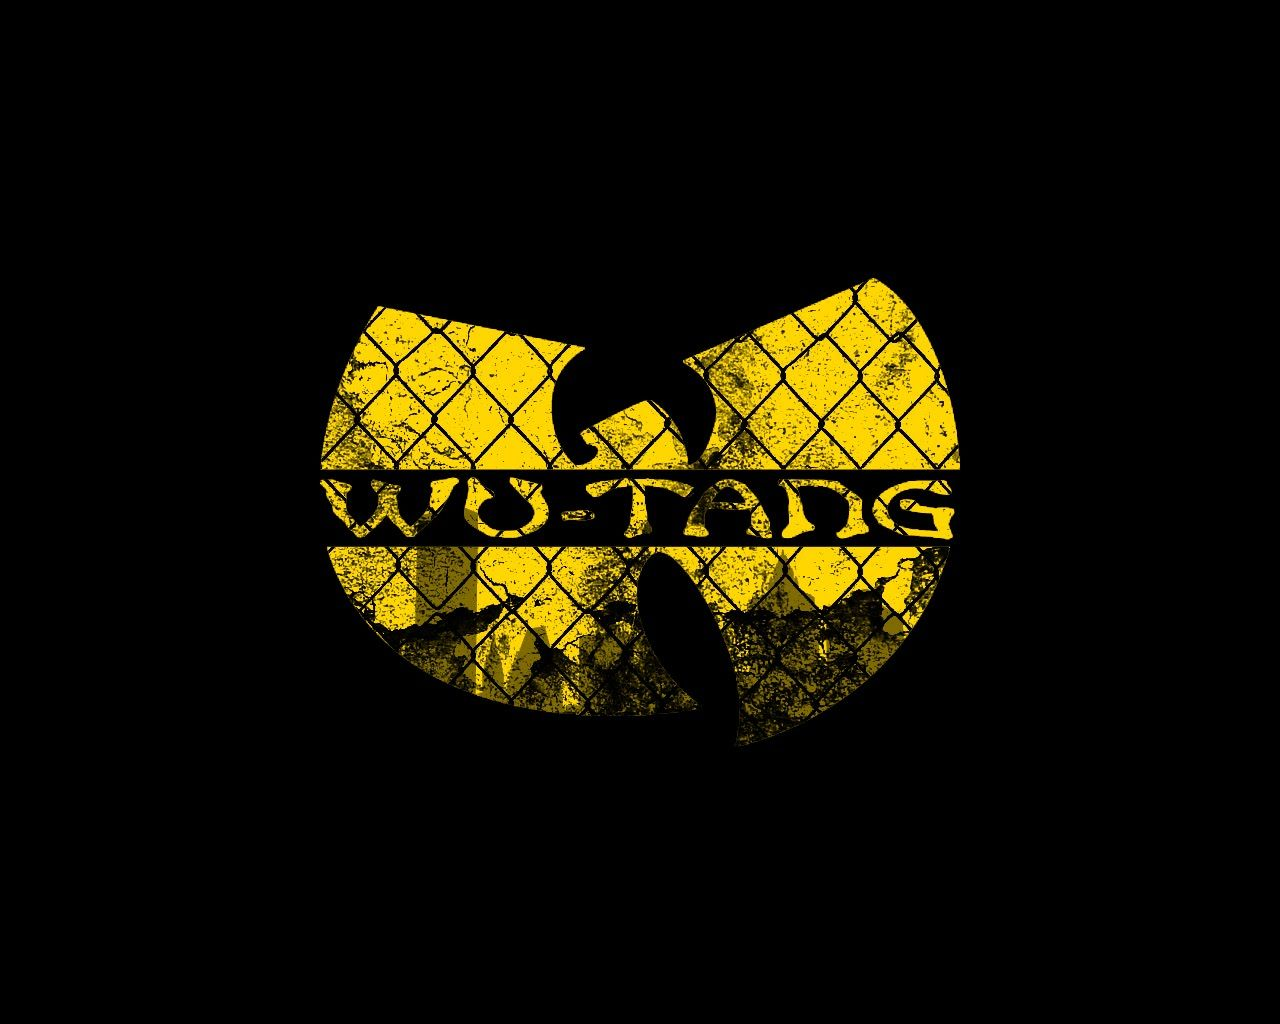 wu tang clan wallpaper hd hd wallpapers | hd wallpapers | pinterest